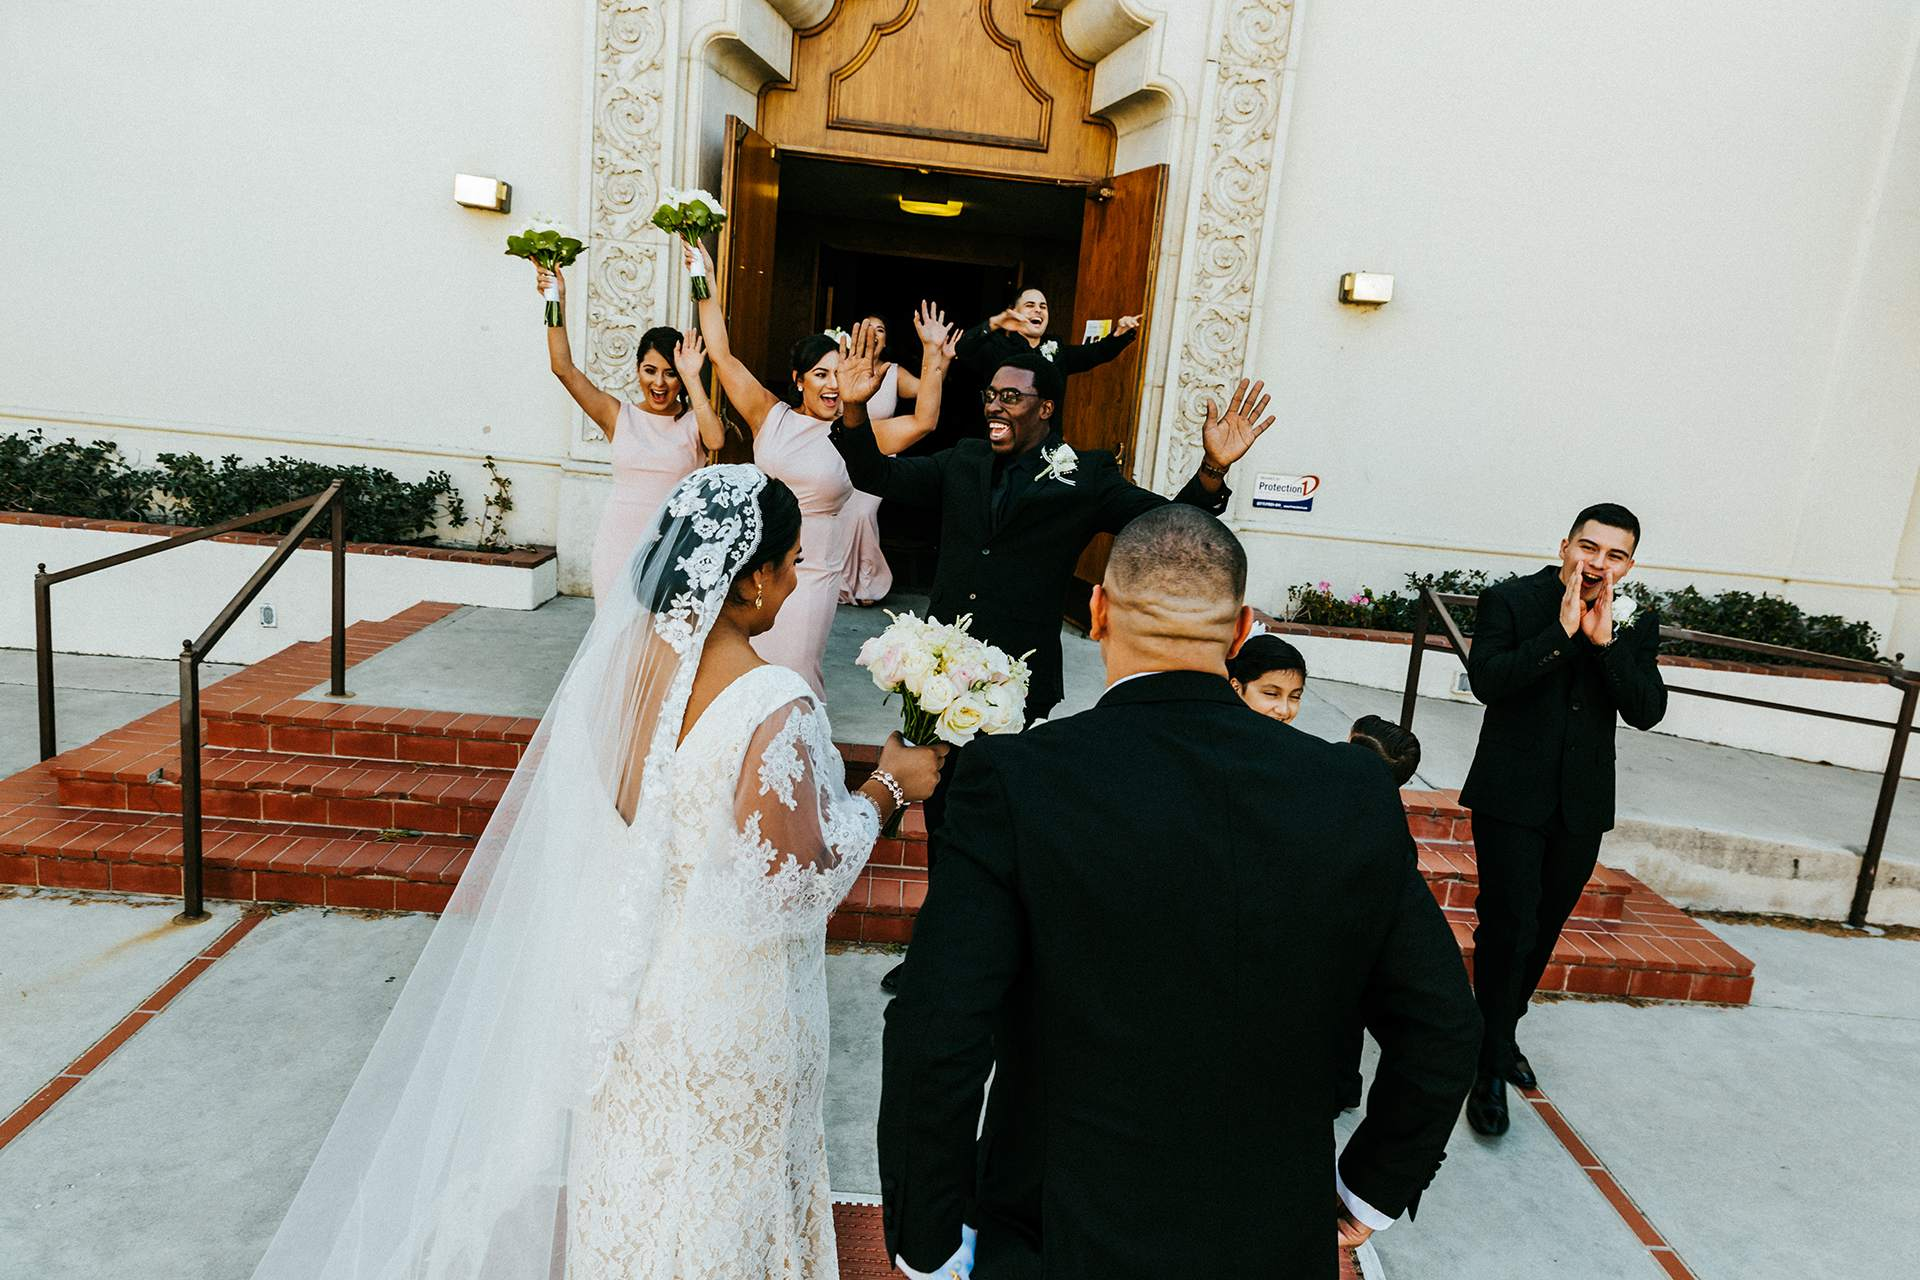 dominican republic wedding, weddings photographer, destination, wedding, photography, photo, heather, east, west, coast, travel, best of, the, knot, ocean, beach, weddings, california, redlands, los, angeles, oc, orange county, san, diego, santa, ana, la,